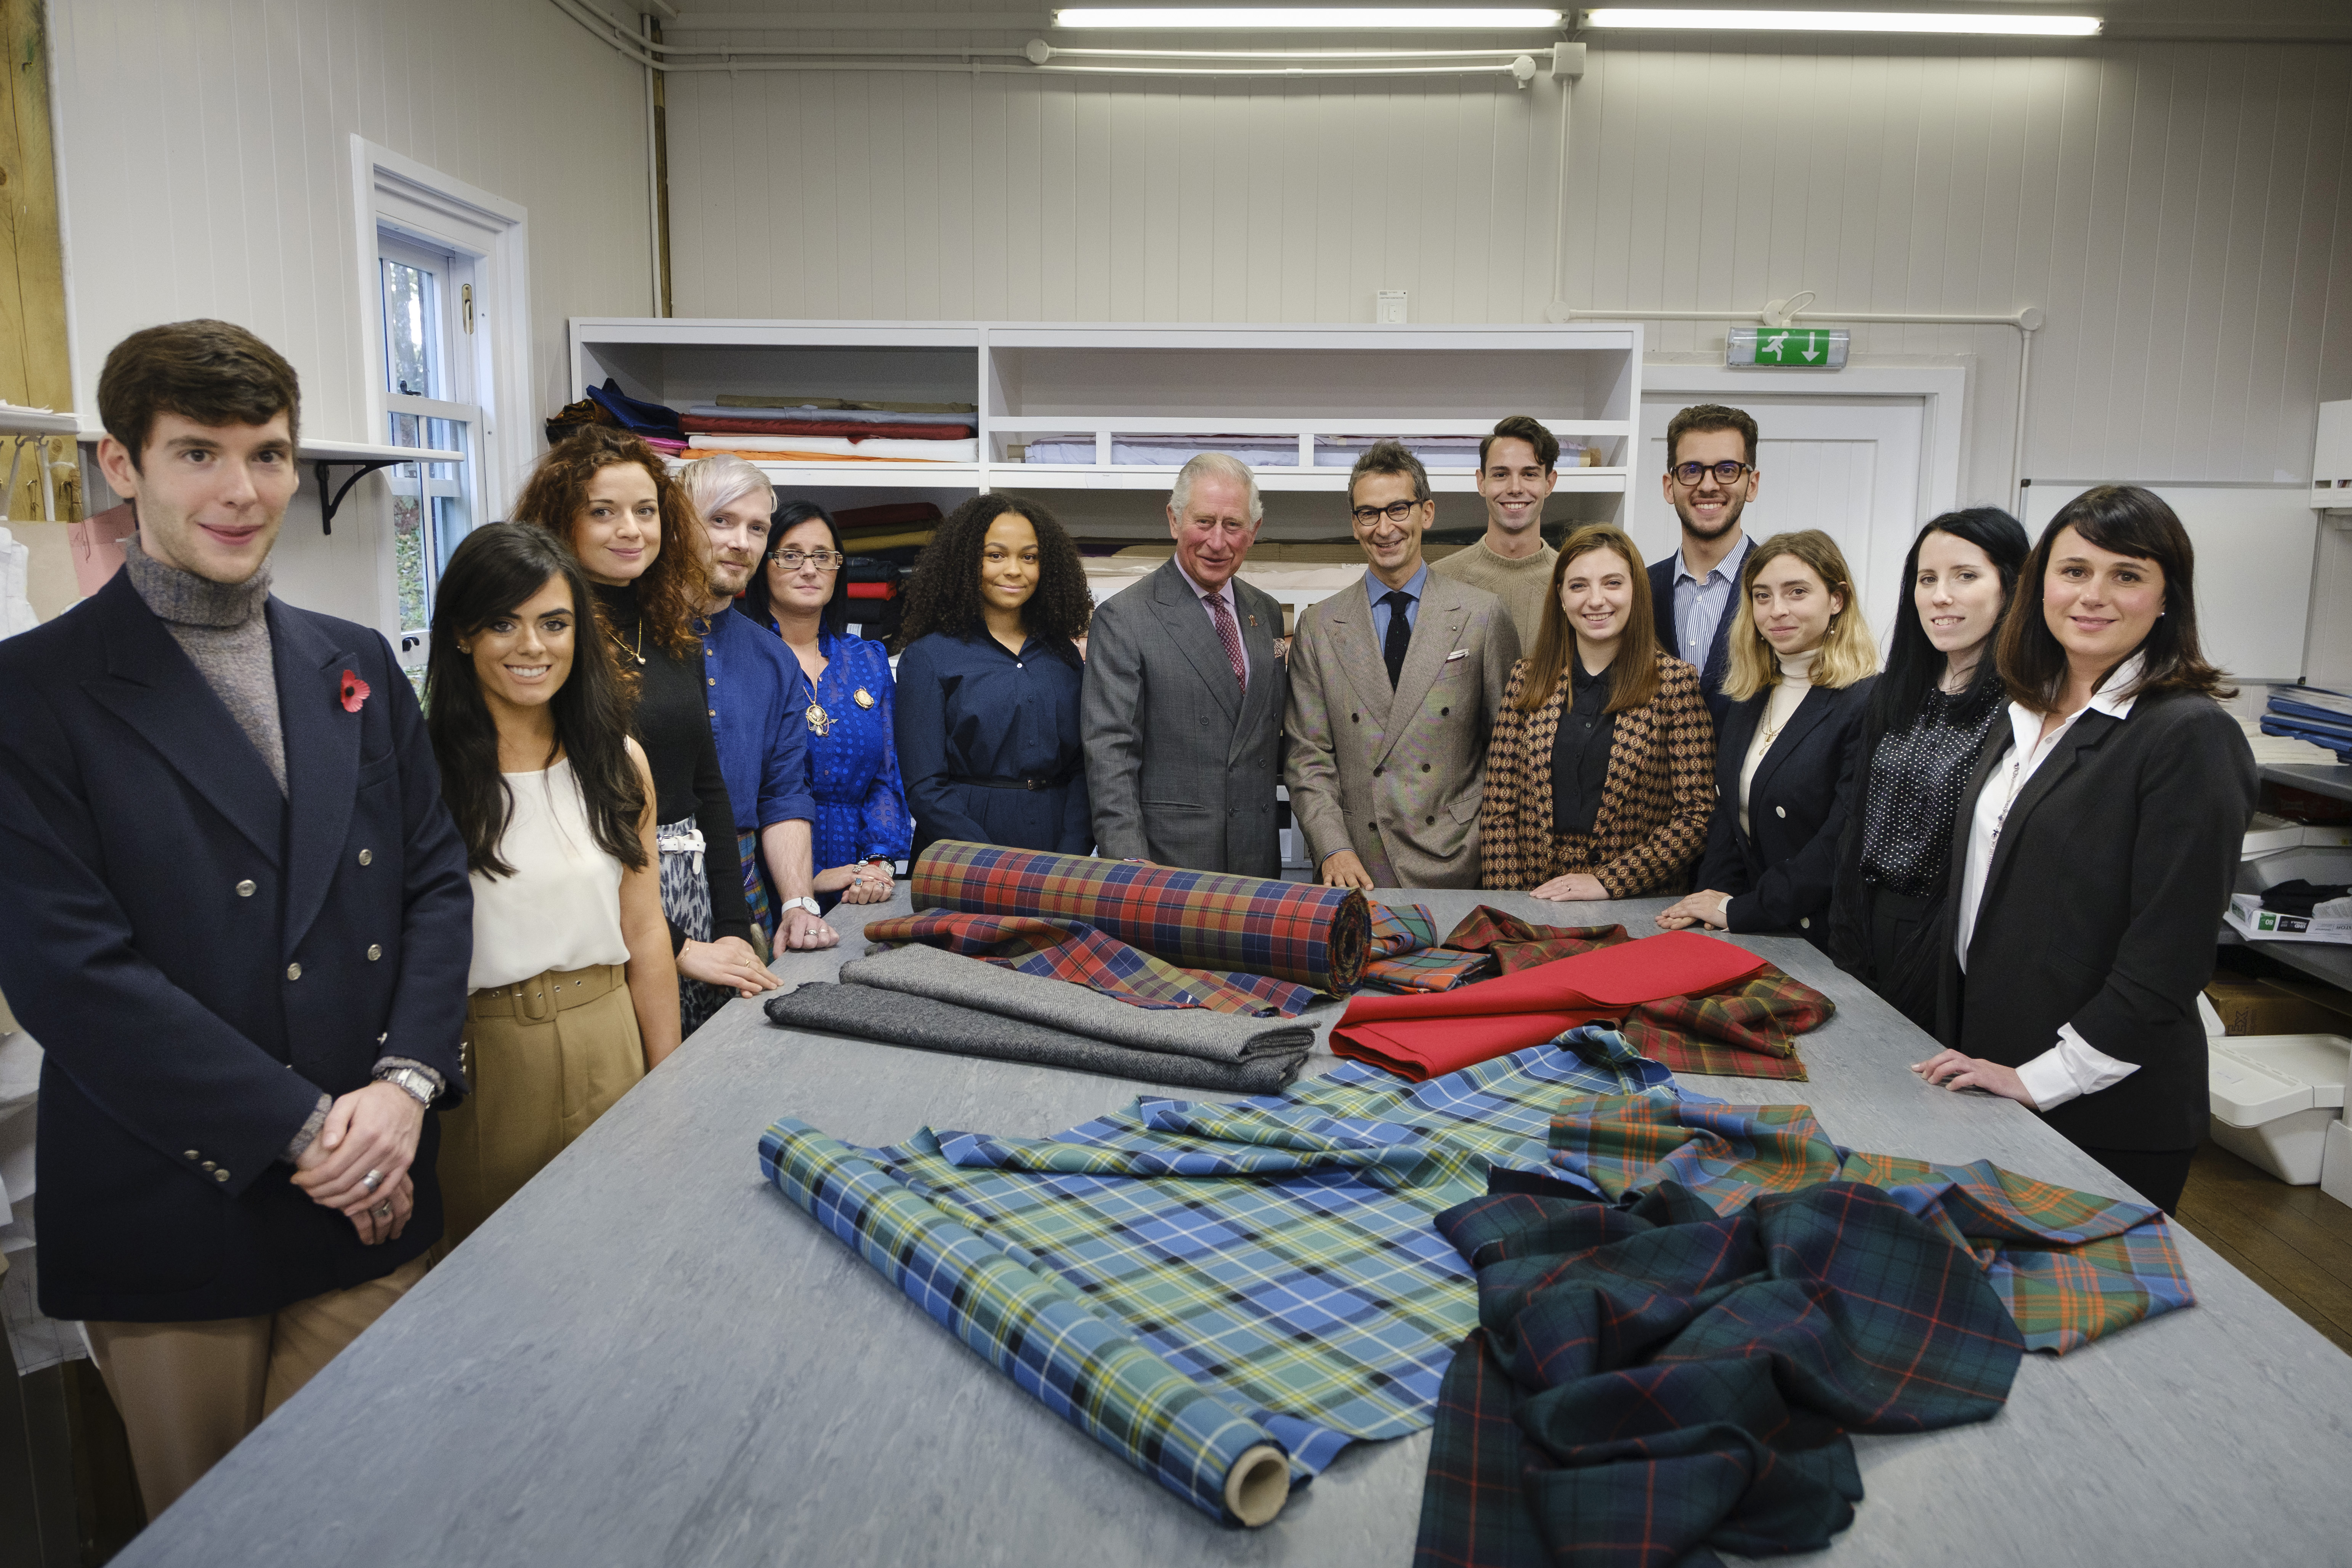 The Modern Artisan students, the Prince of Wales and Federico Marchetti